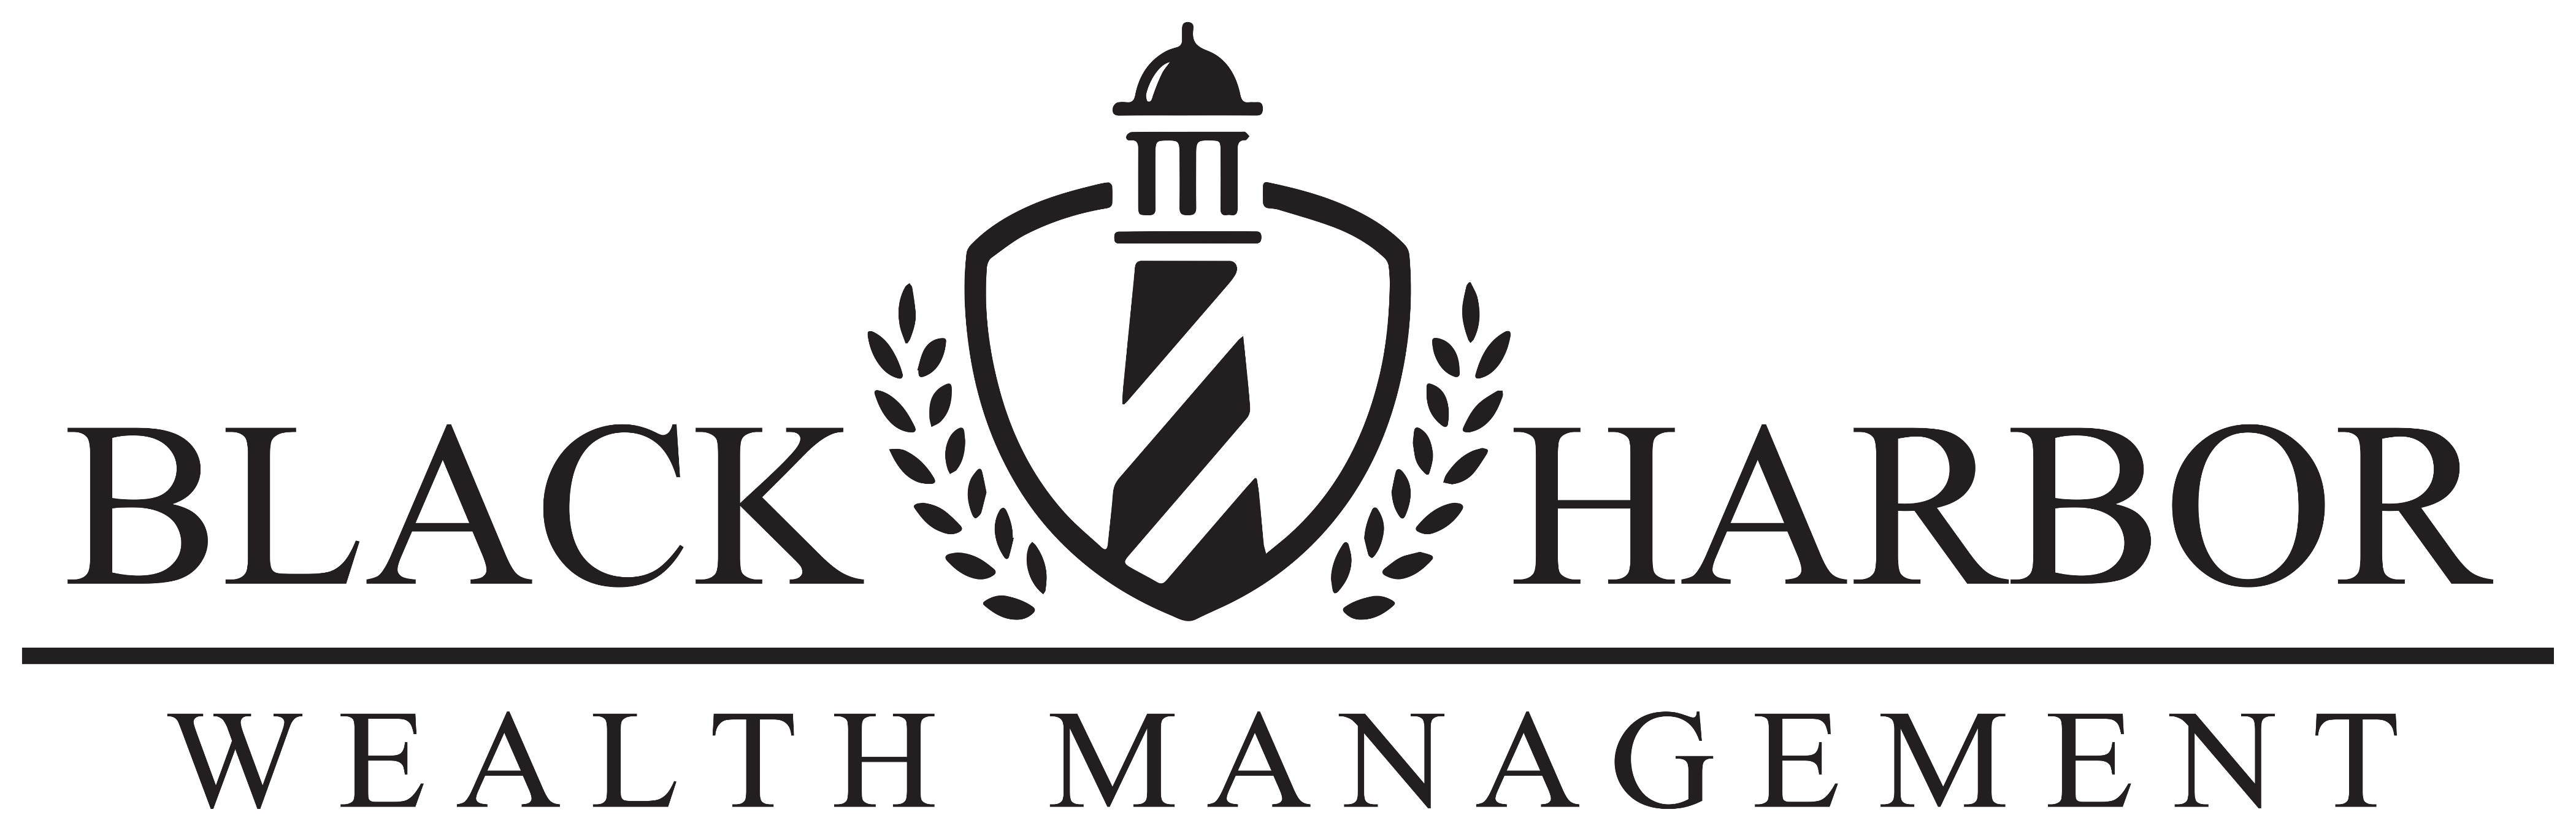 Black Harbor Wealth Management